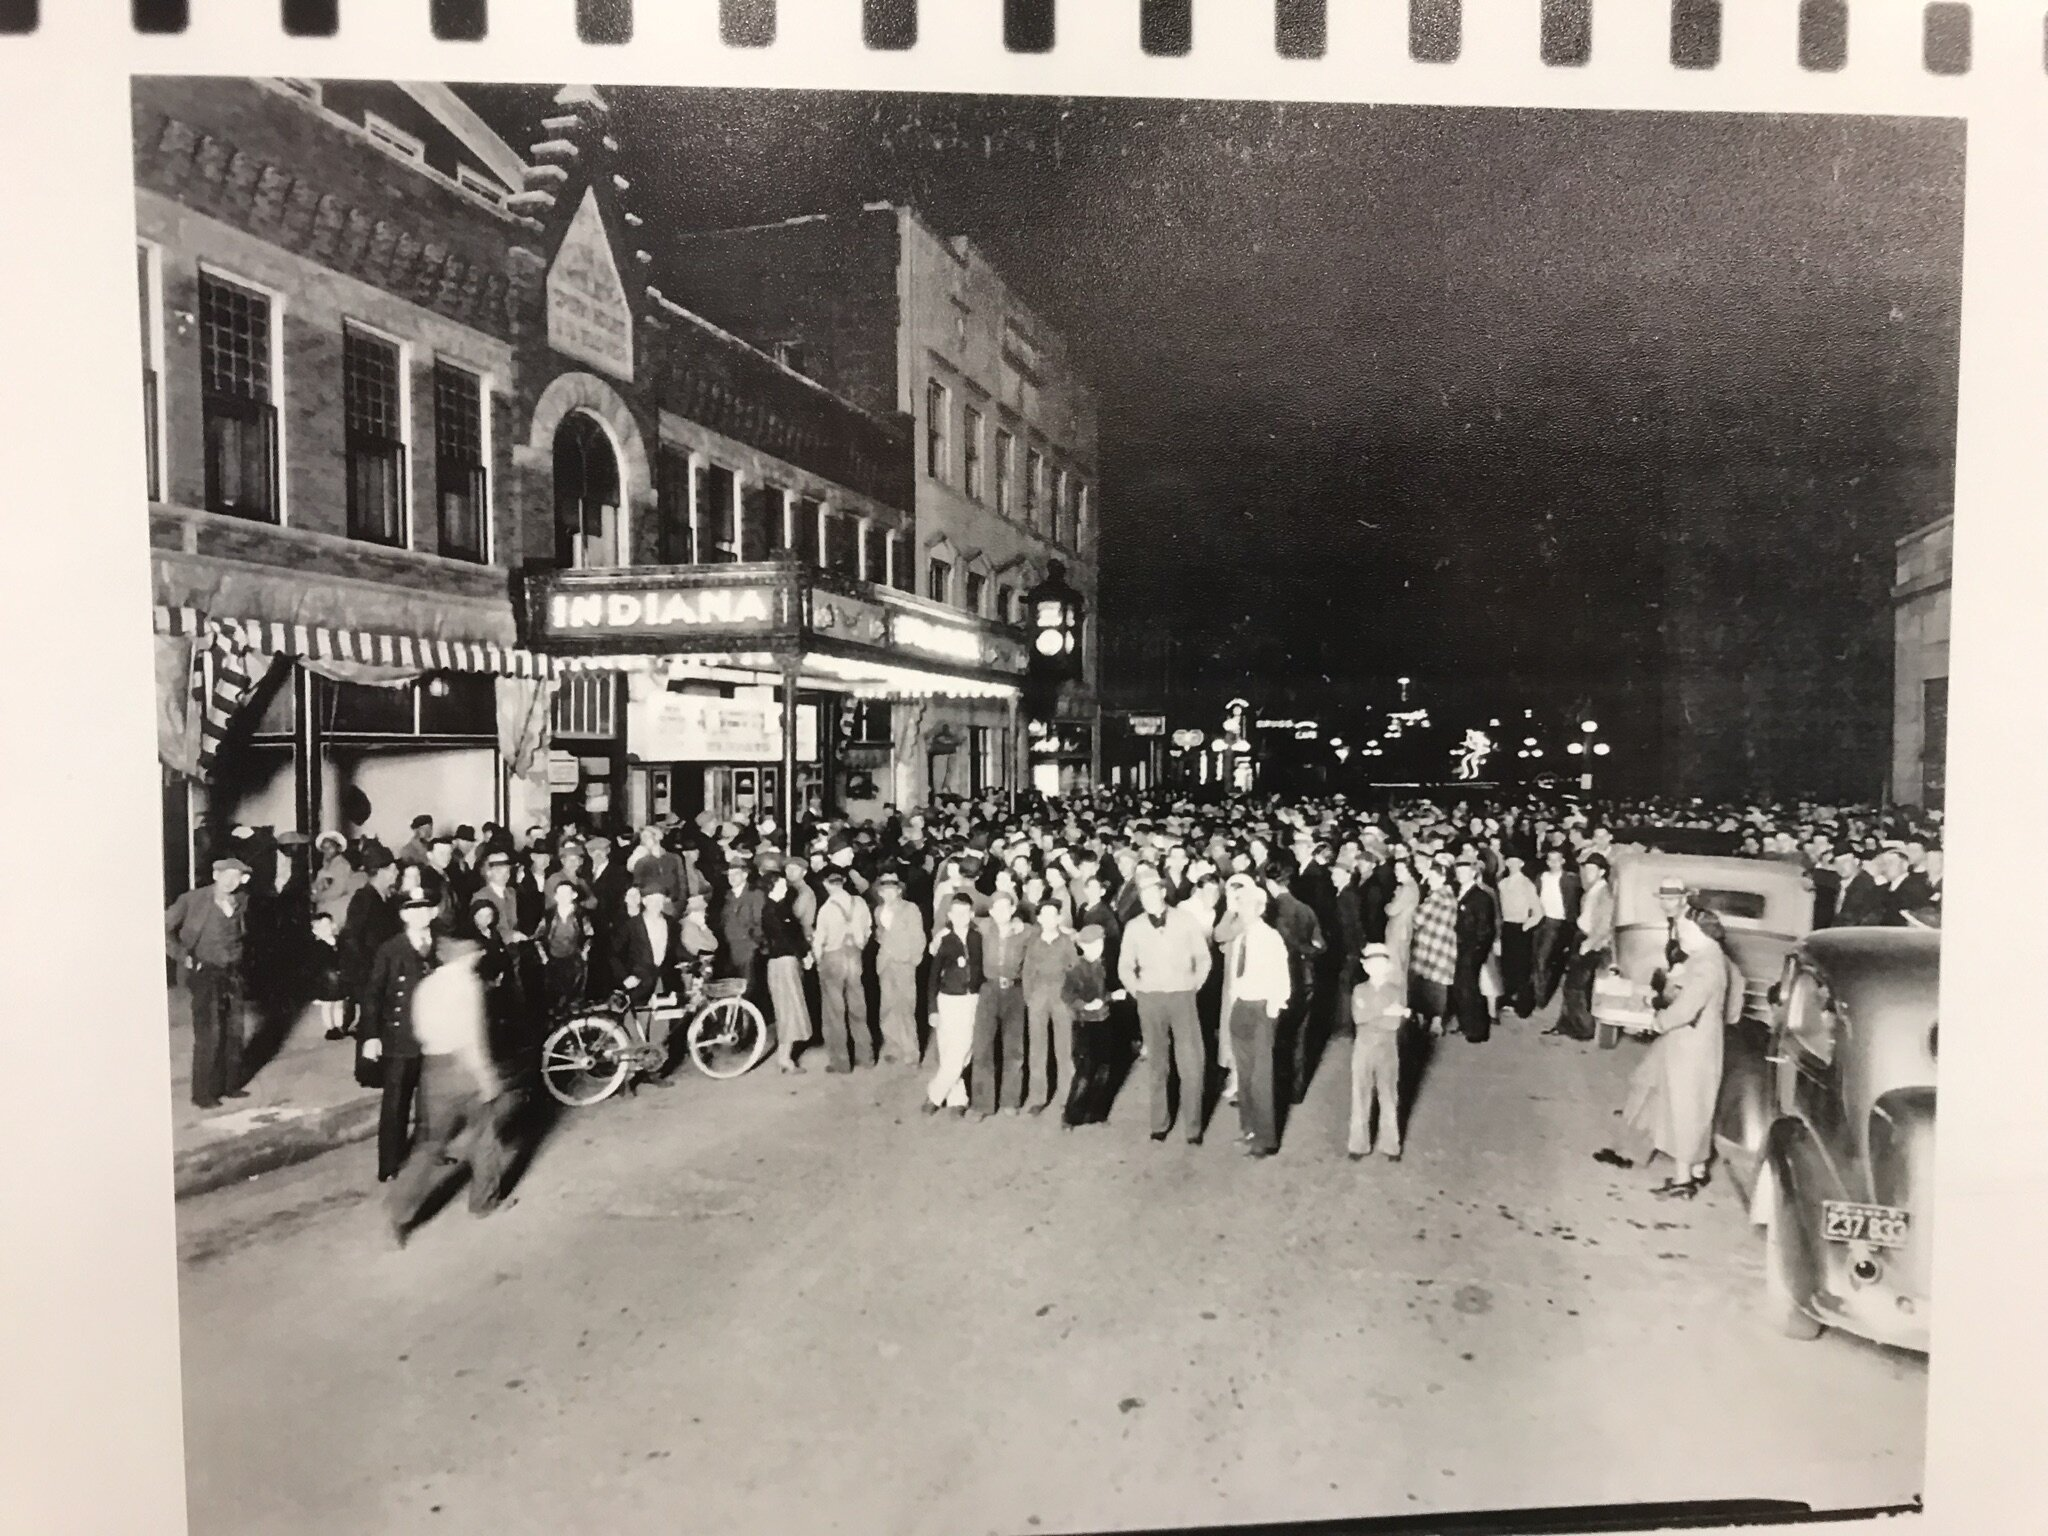 Fair attendees enjoyed trying to identify this picture. Answer: Indiana Theatre on Bedford's 15th Street in the 1930s. People had gathered in hopes of winning a car..